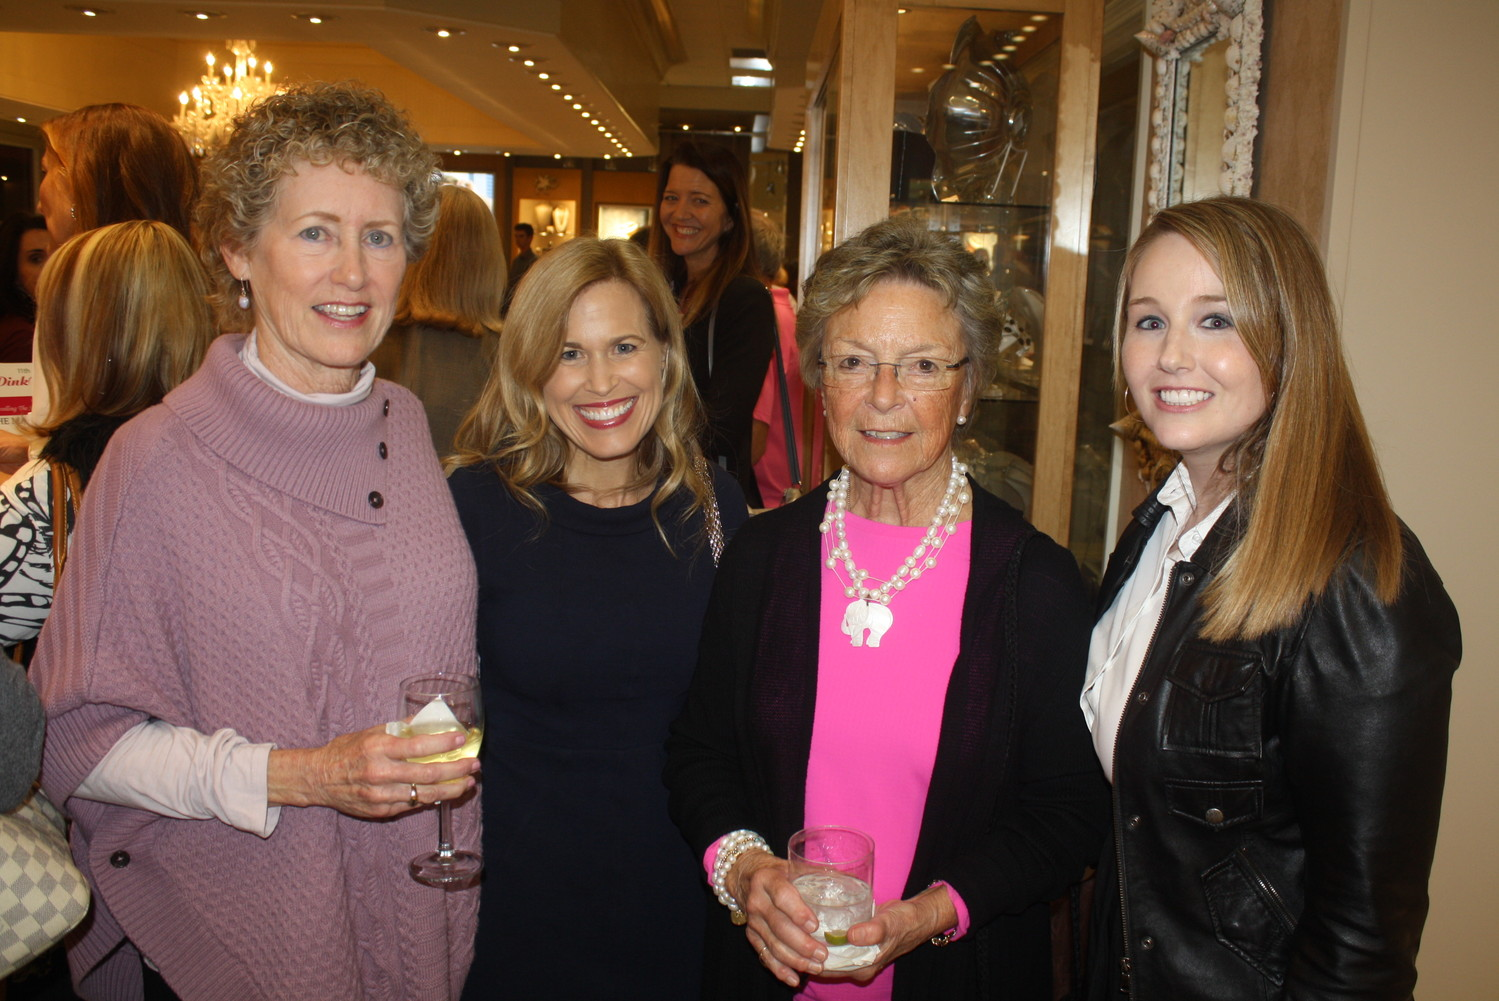 Kathie Seabrook, Dr. Dawn Mussallem, Susie Buckey and Jackie Joy gather at the event.